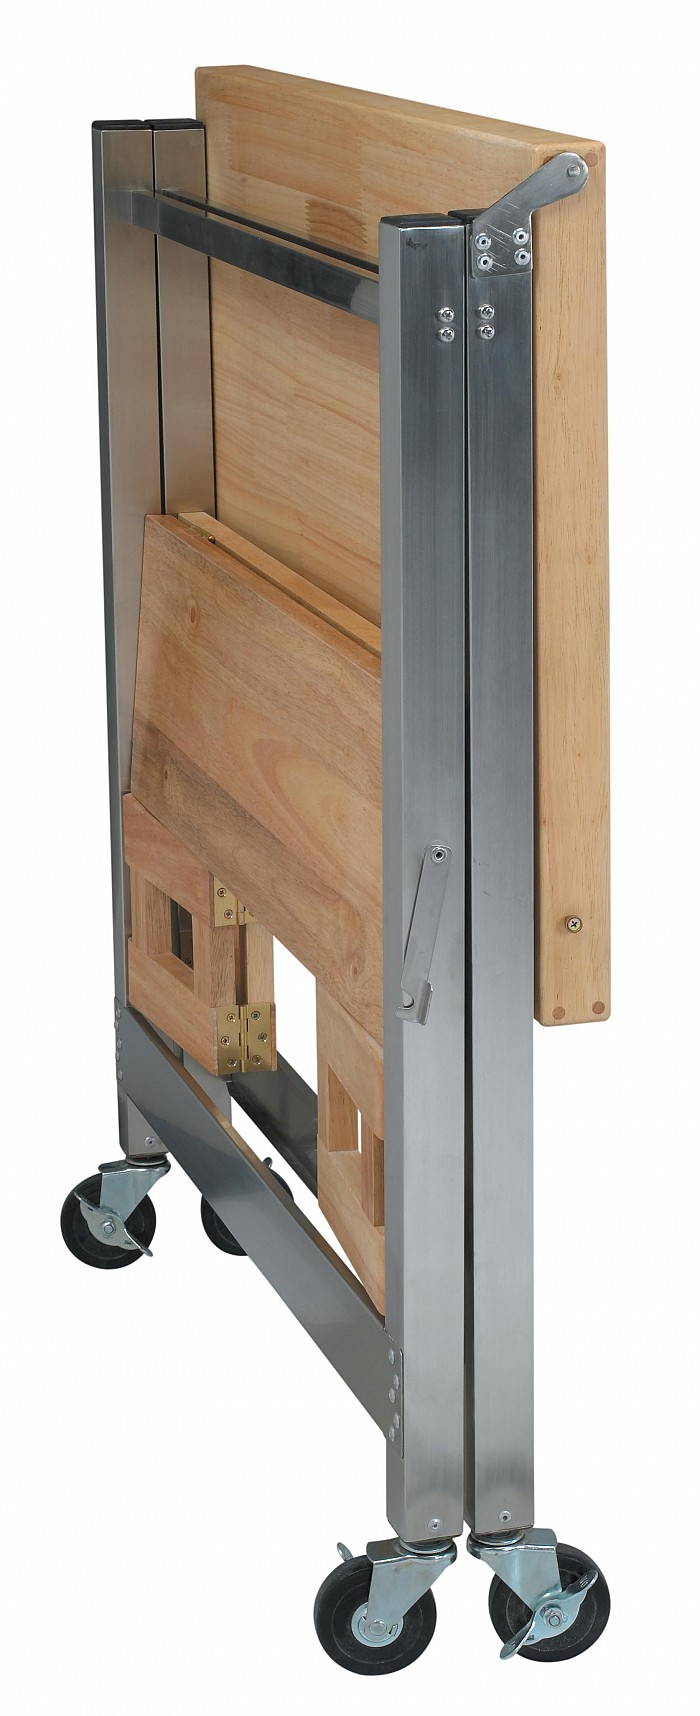 Stainless Steel And Wood Kitchen Cart 30 X 20 In